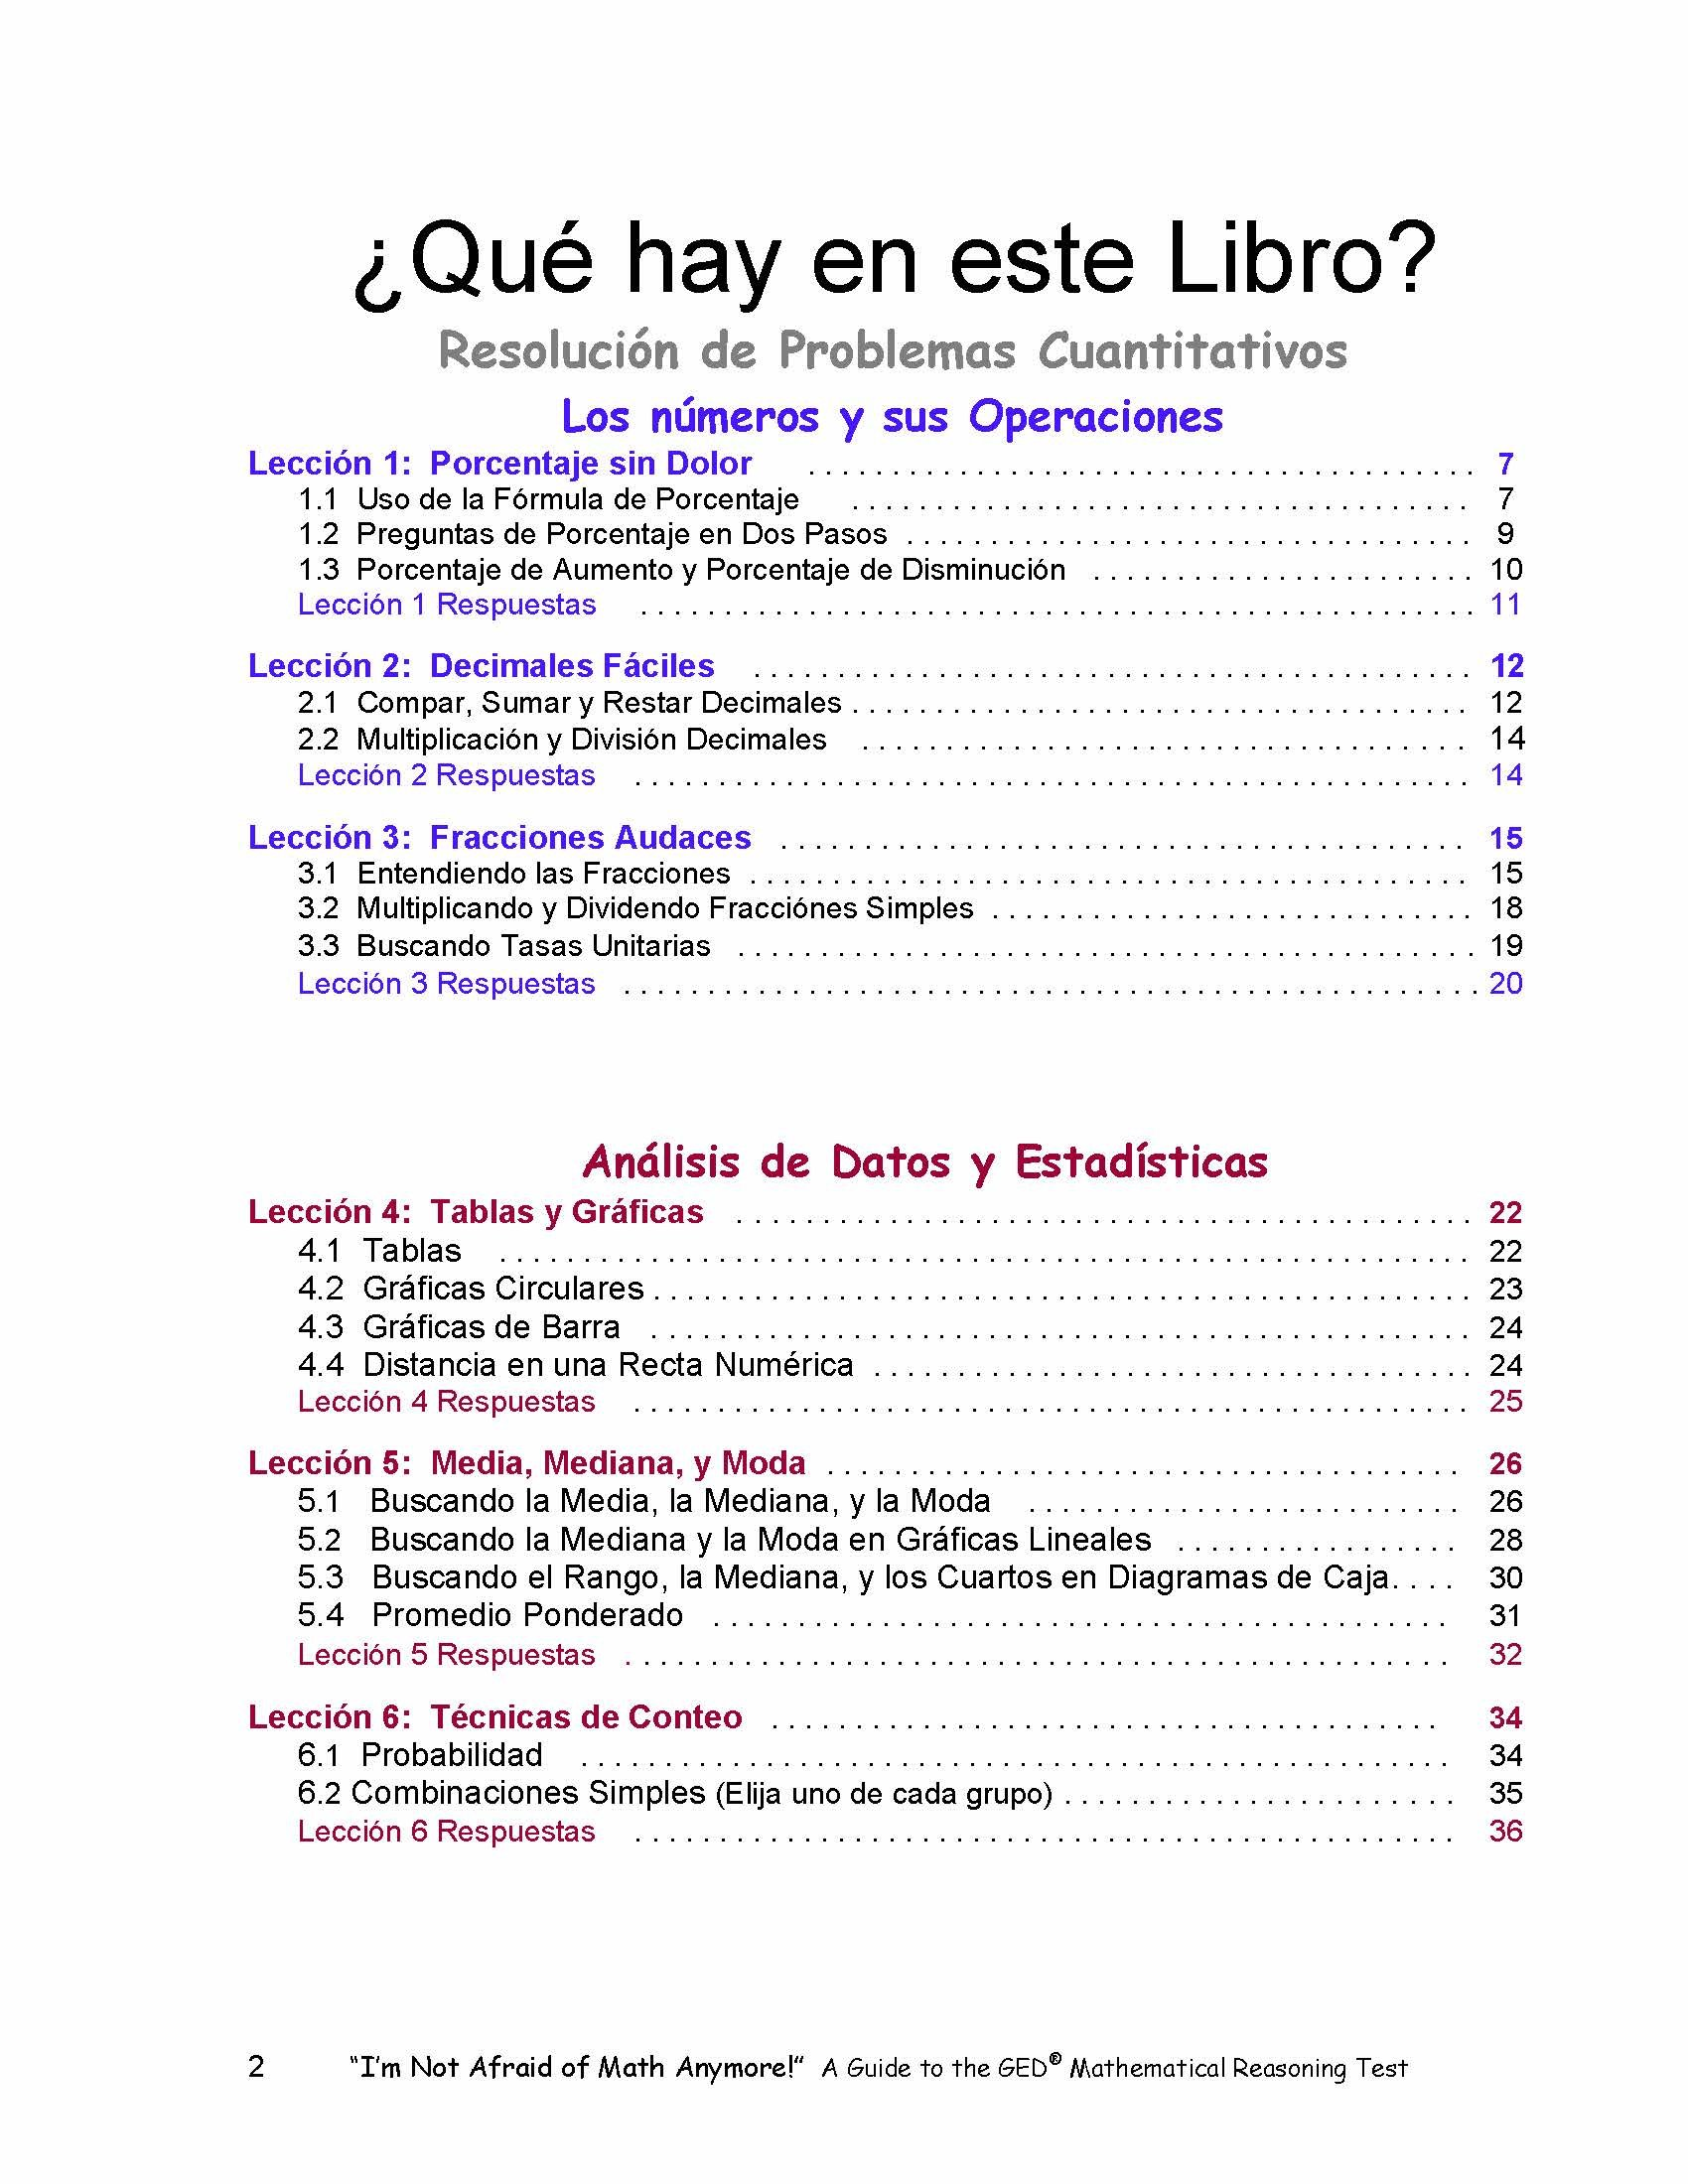 Leccion 4 ebook 80 off choice image free ebooks and more im not afraid of math anymore spanish edition no le temer im not afraid of math fandeluxe Images